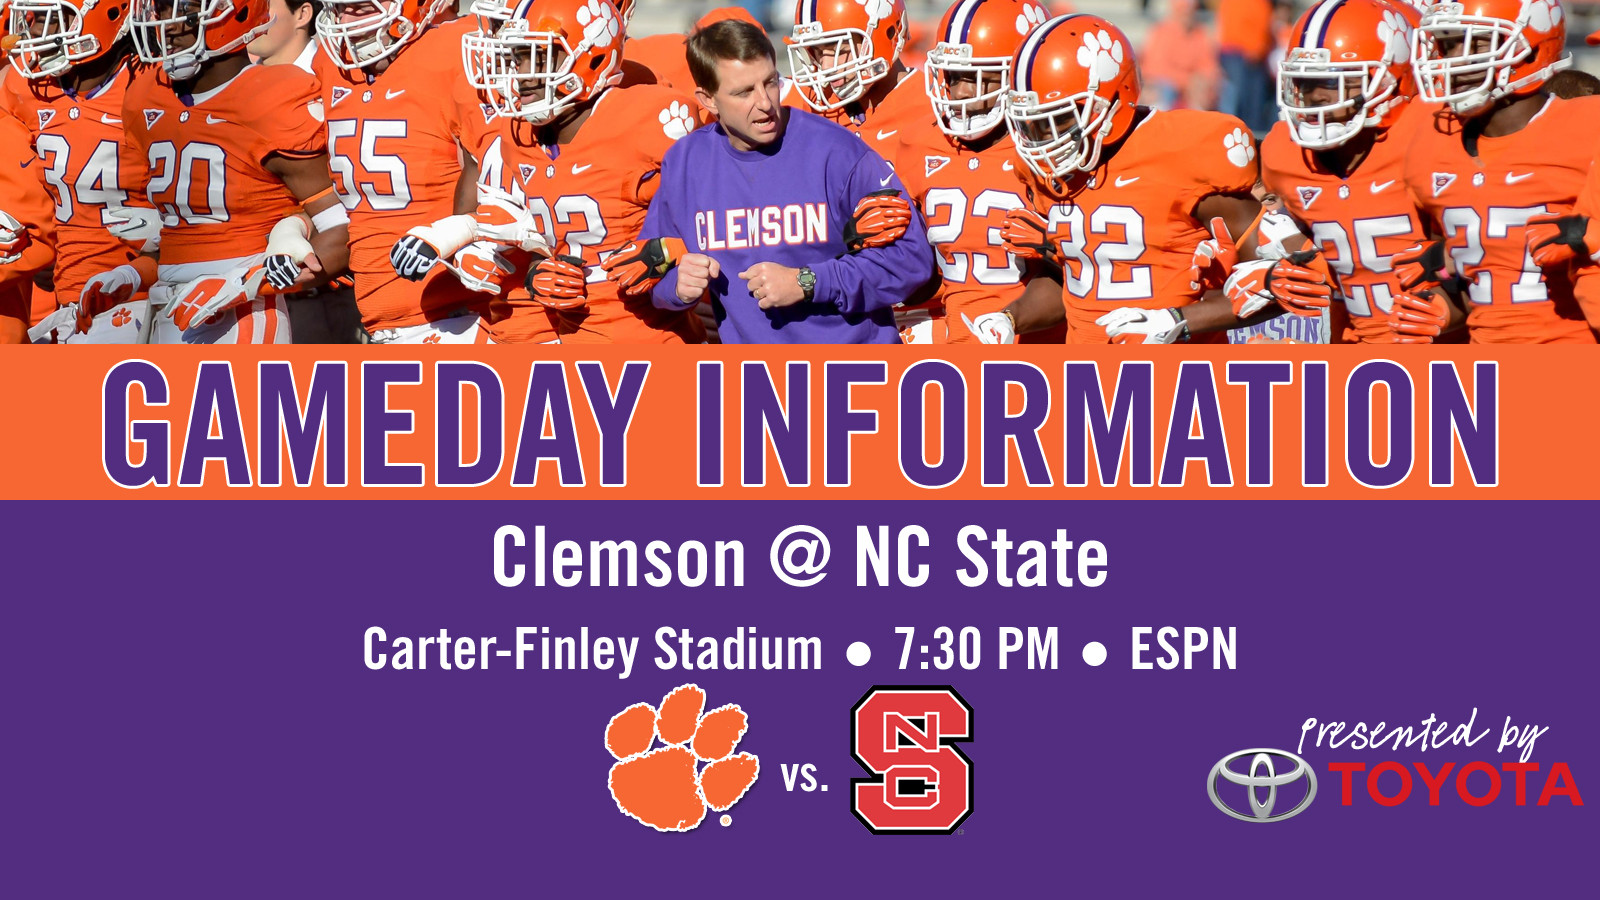 Clemson @ NC State Football Gameday Information